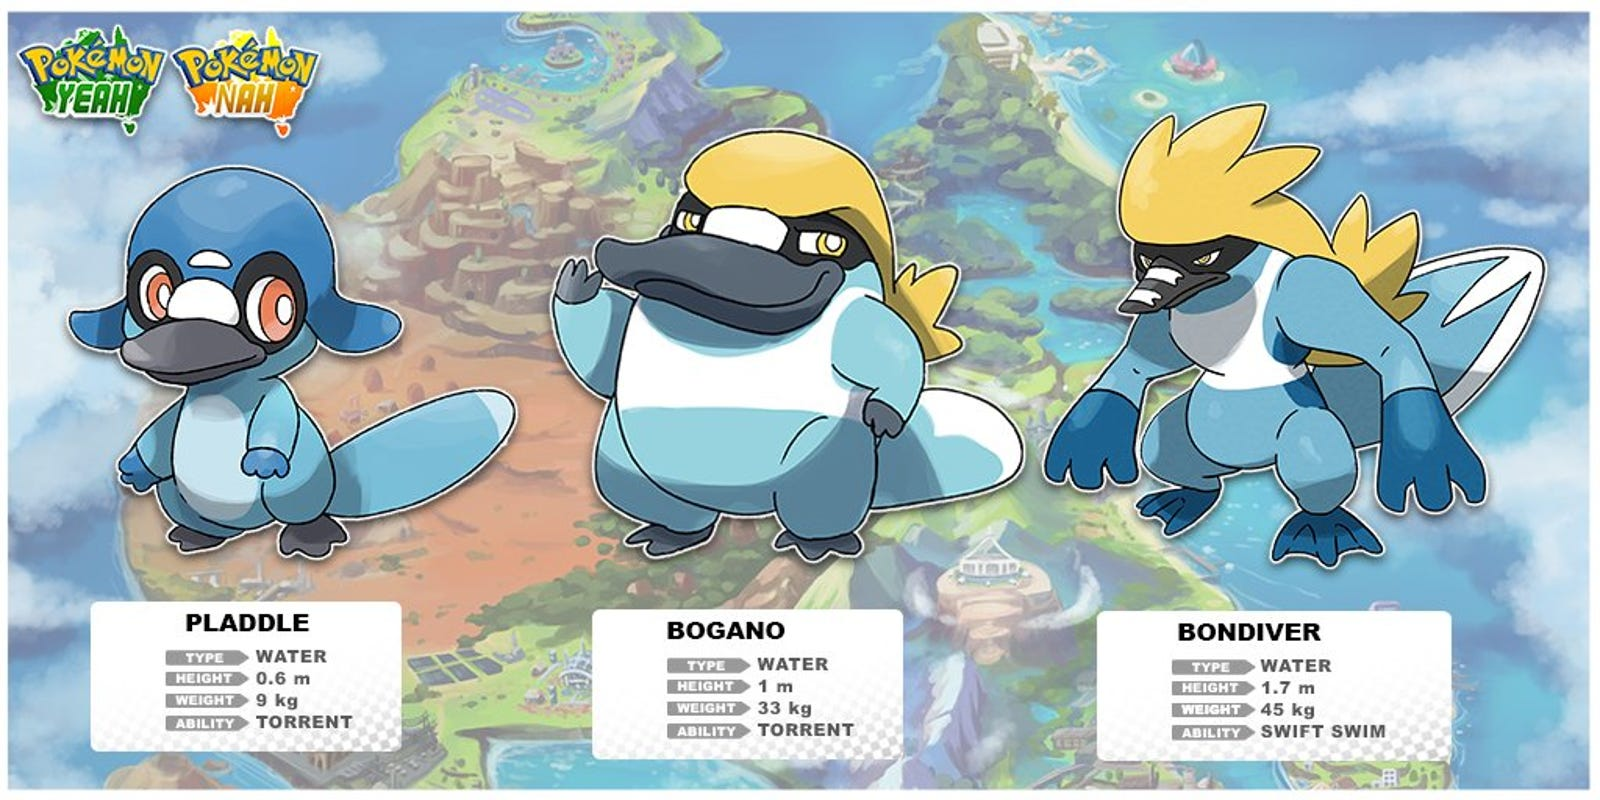 """Pladdle is based on a platypus. The mullet on """"Bogano"""" (a """"Bogan"""" is a loaded word that dictionaries generously describe as """"an uncouth or unsophisticated person regarded as being of low social status"""") is a nice touch."""